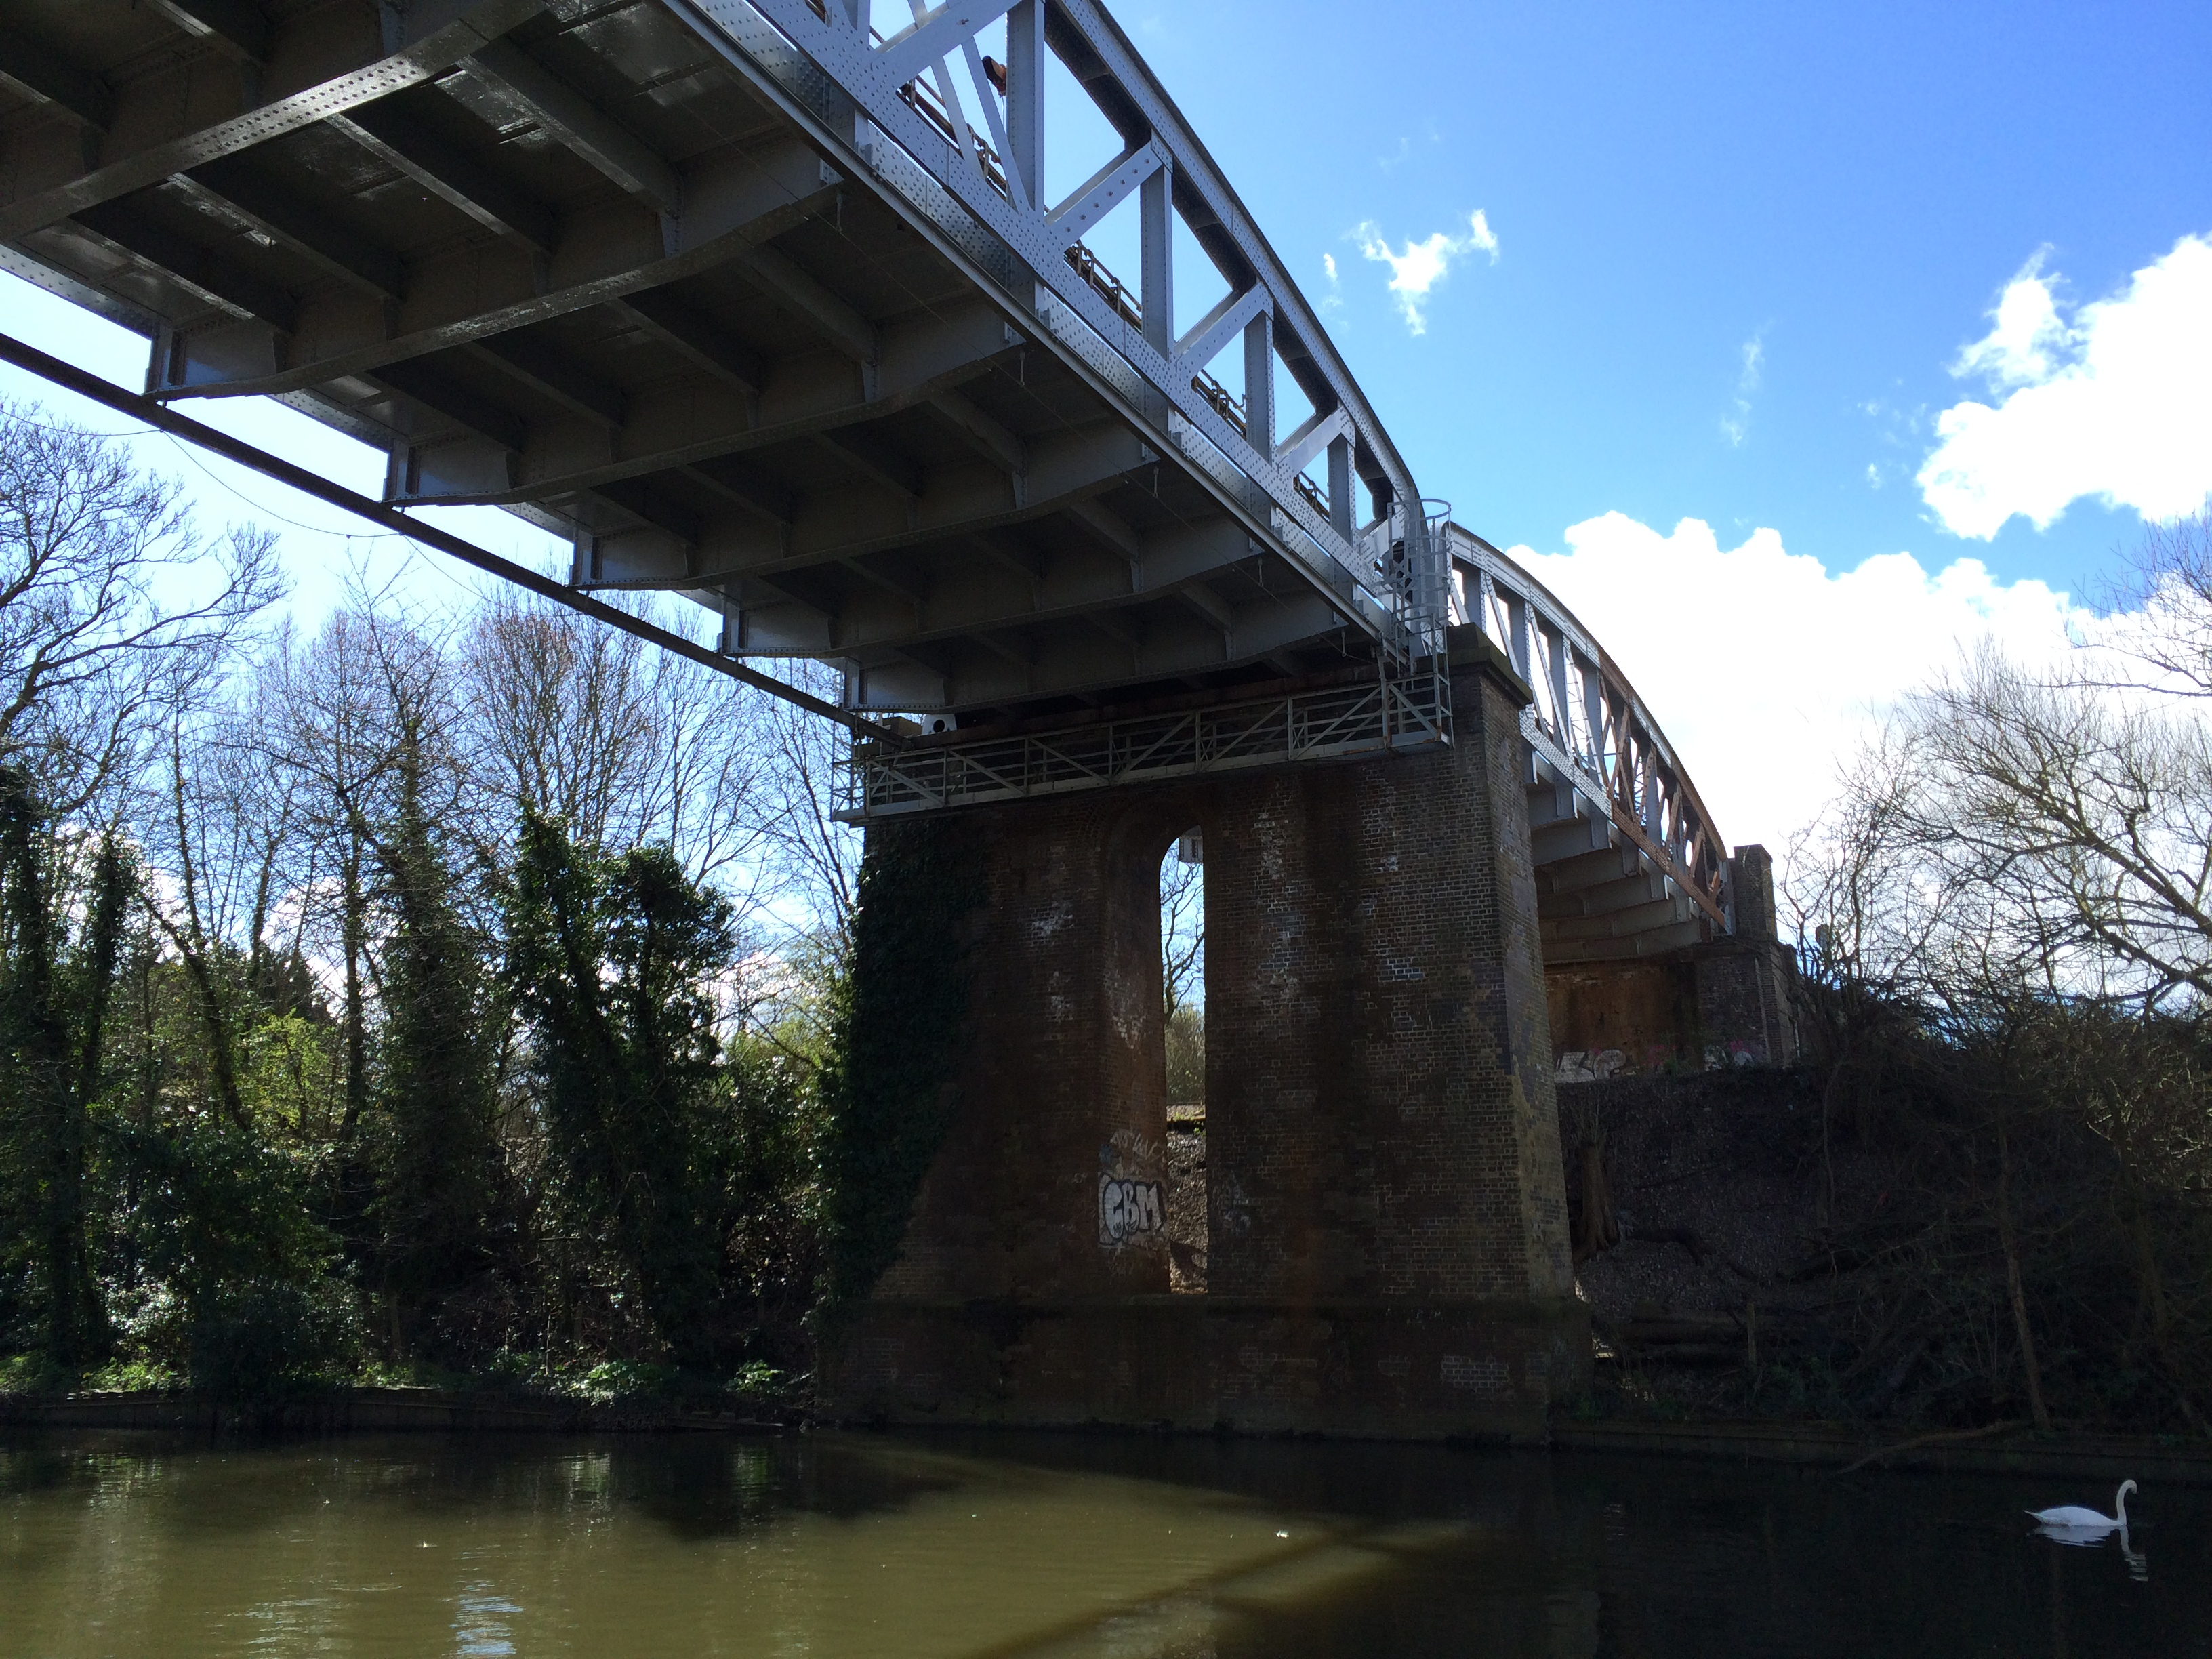 underbridge-normal-iphone-5s.jpg